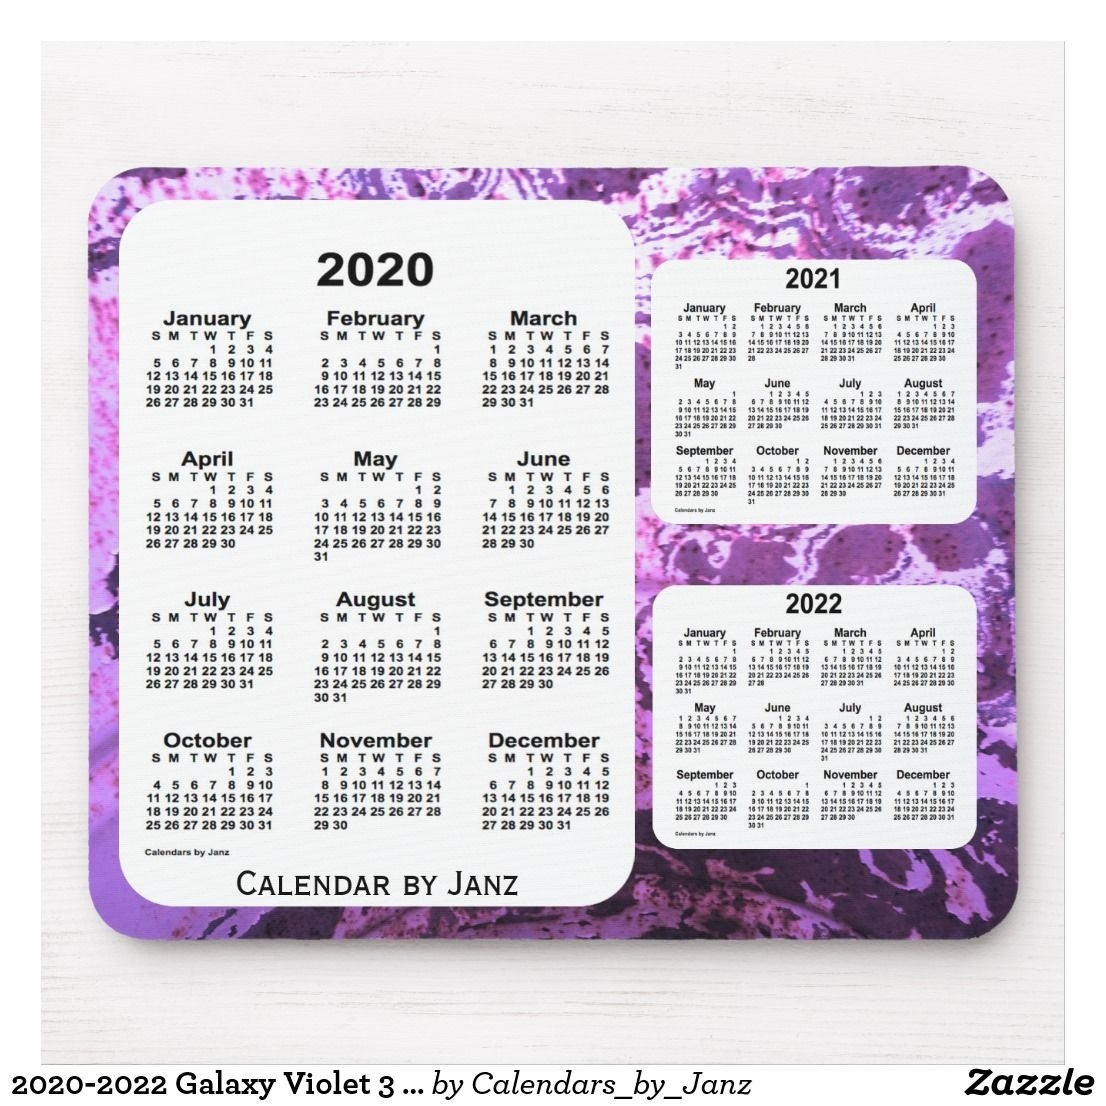 2020-2022 Galaxy Violet 3 Year Calendar By Janz Mouse Pad 3 Year Calendar Reference Printable 2020-2022